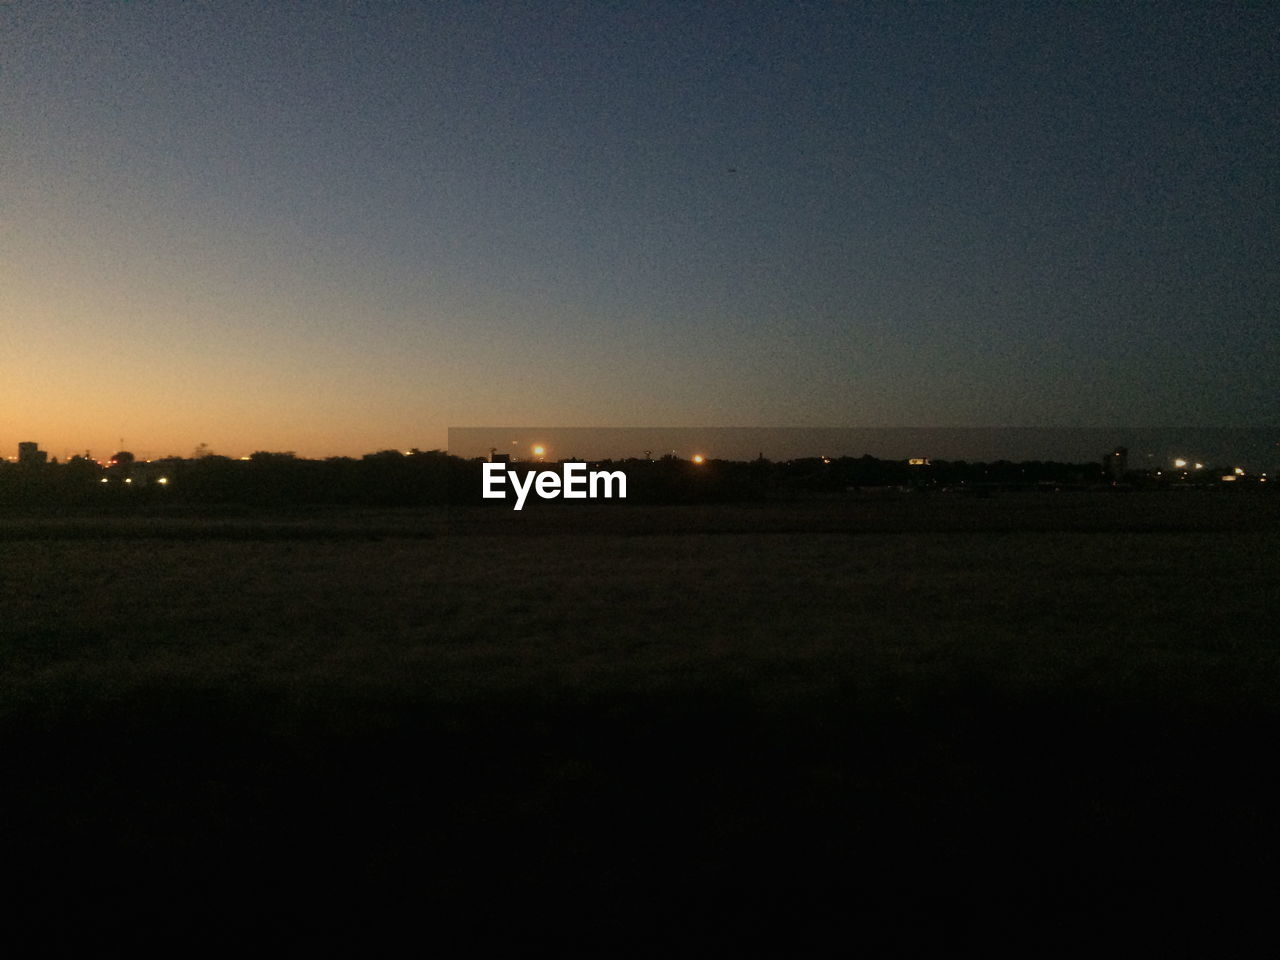 field, landscape, sunset, copy space, clear sky, nature, silhouette, tranquility, no people, night, outdoors, sky, beauty in nature, scenics